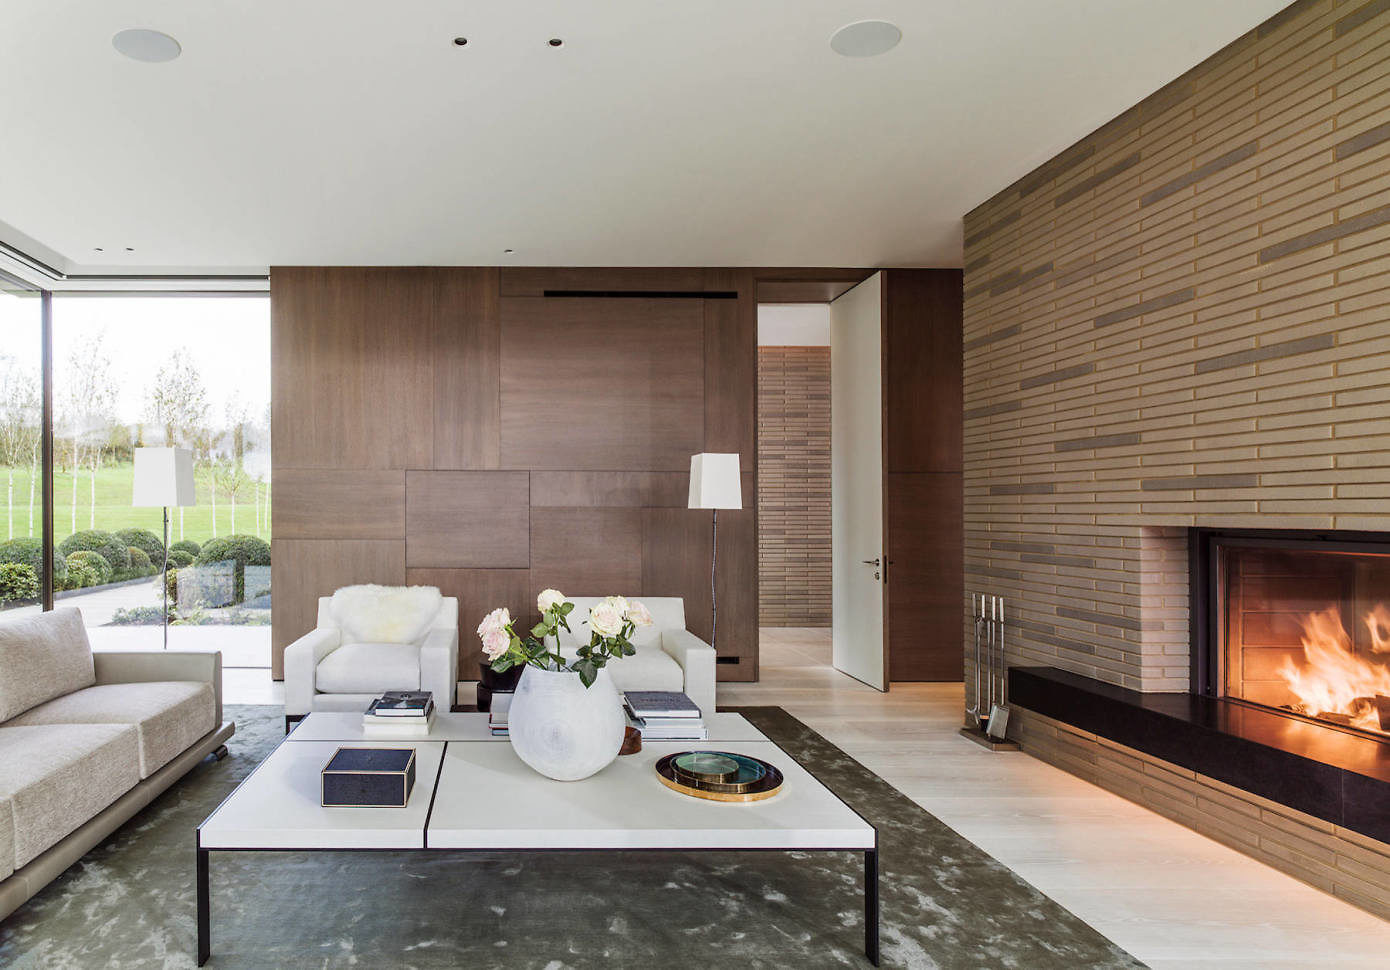 Shropshire Residence by Gregory Phillips Architects